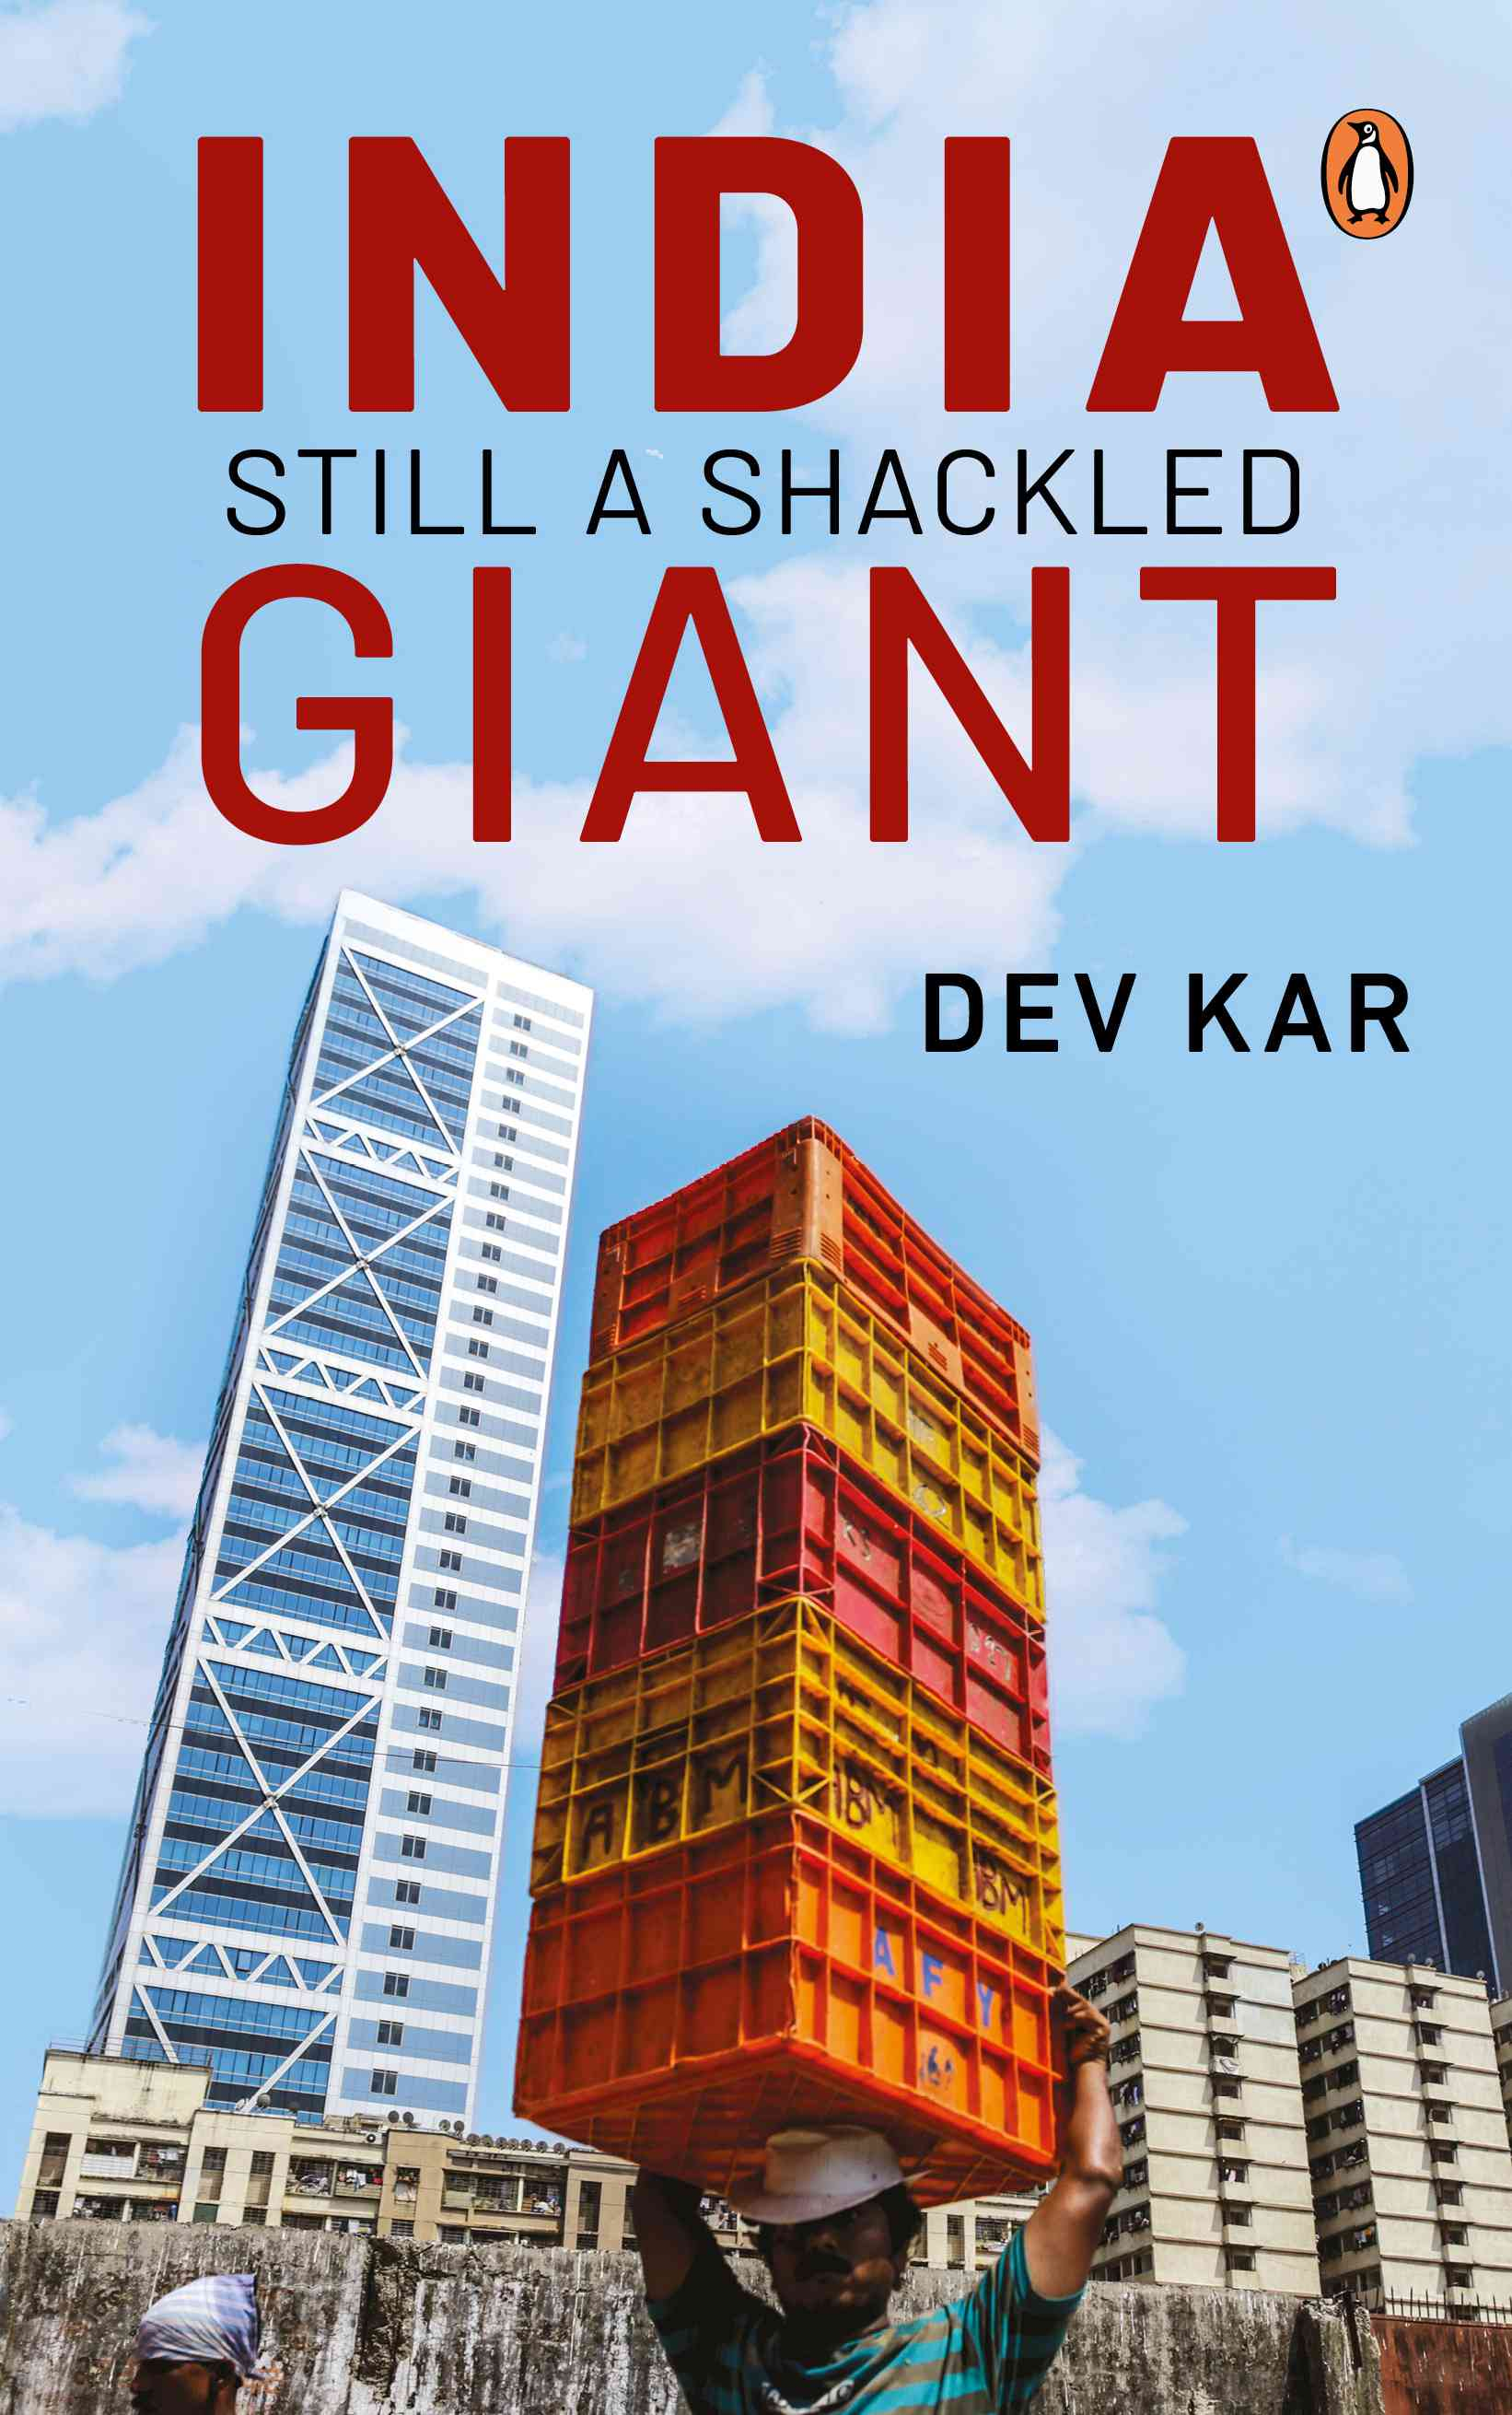 India Still A Shackled Giant